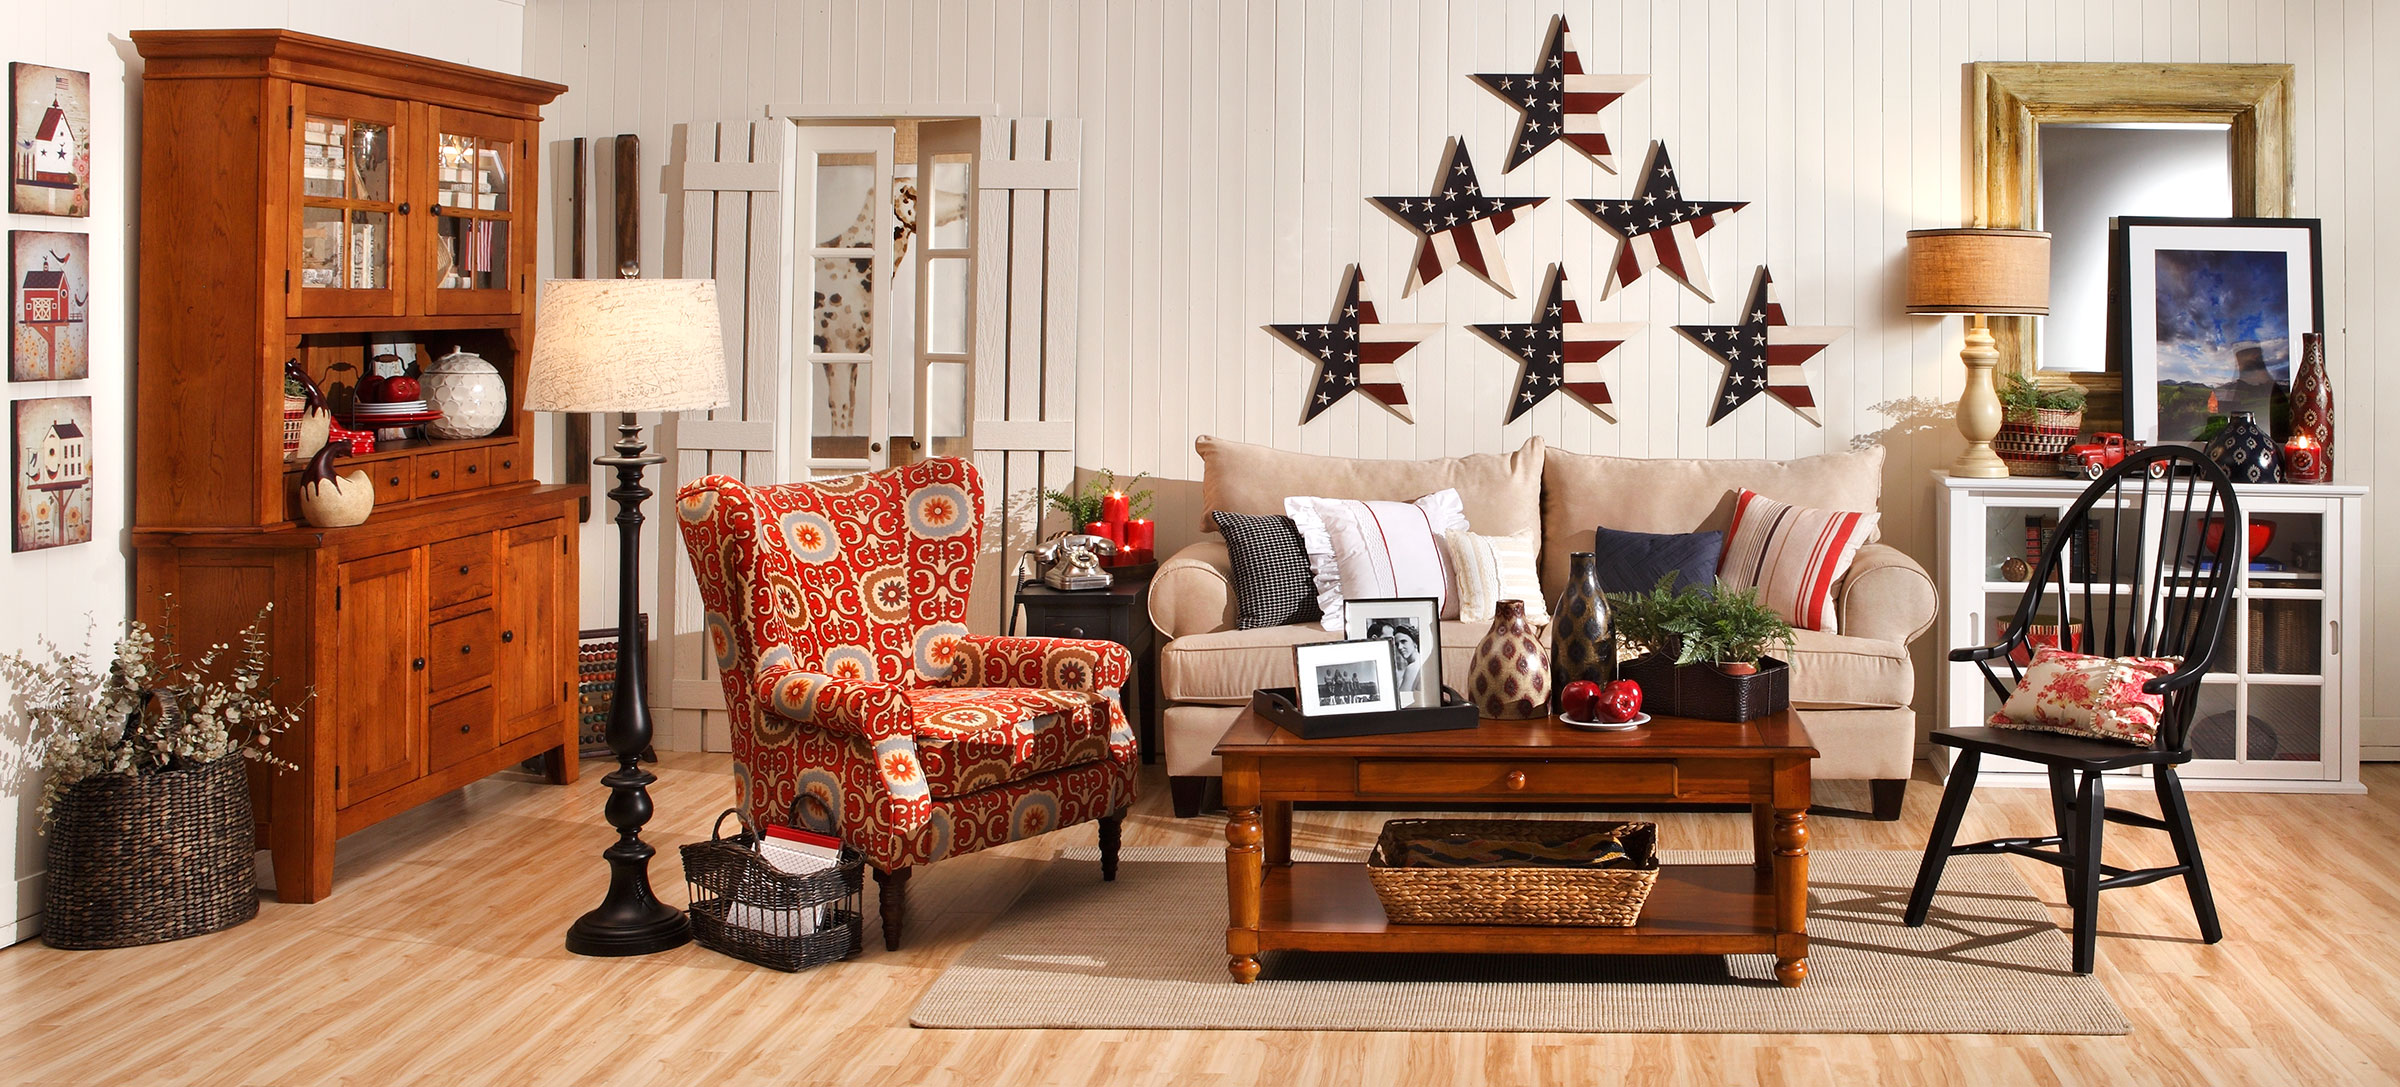 Americana Country Home Decor